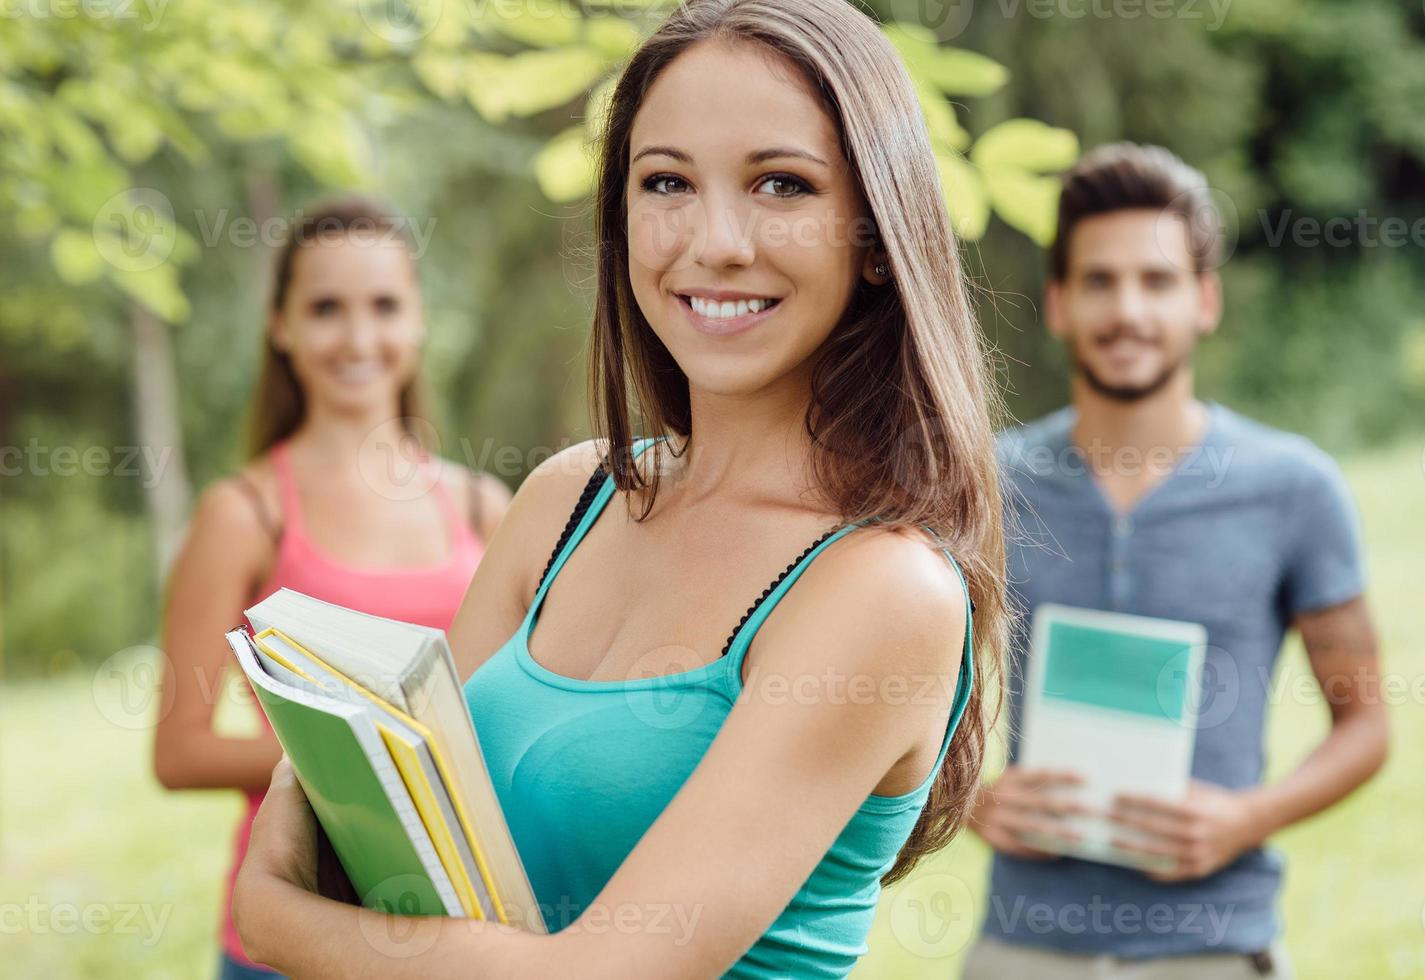 Smiling student posing with notebooks photo